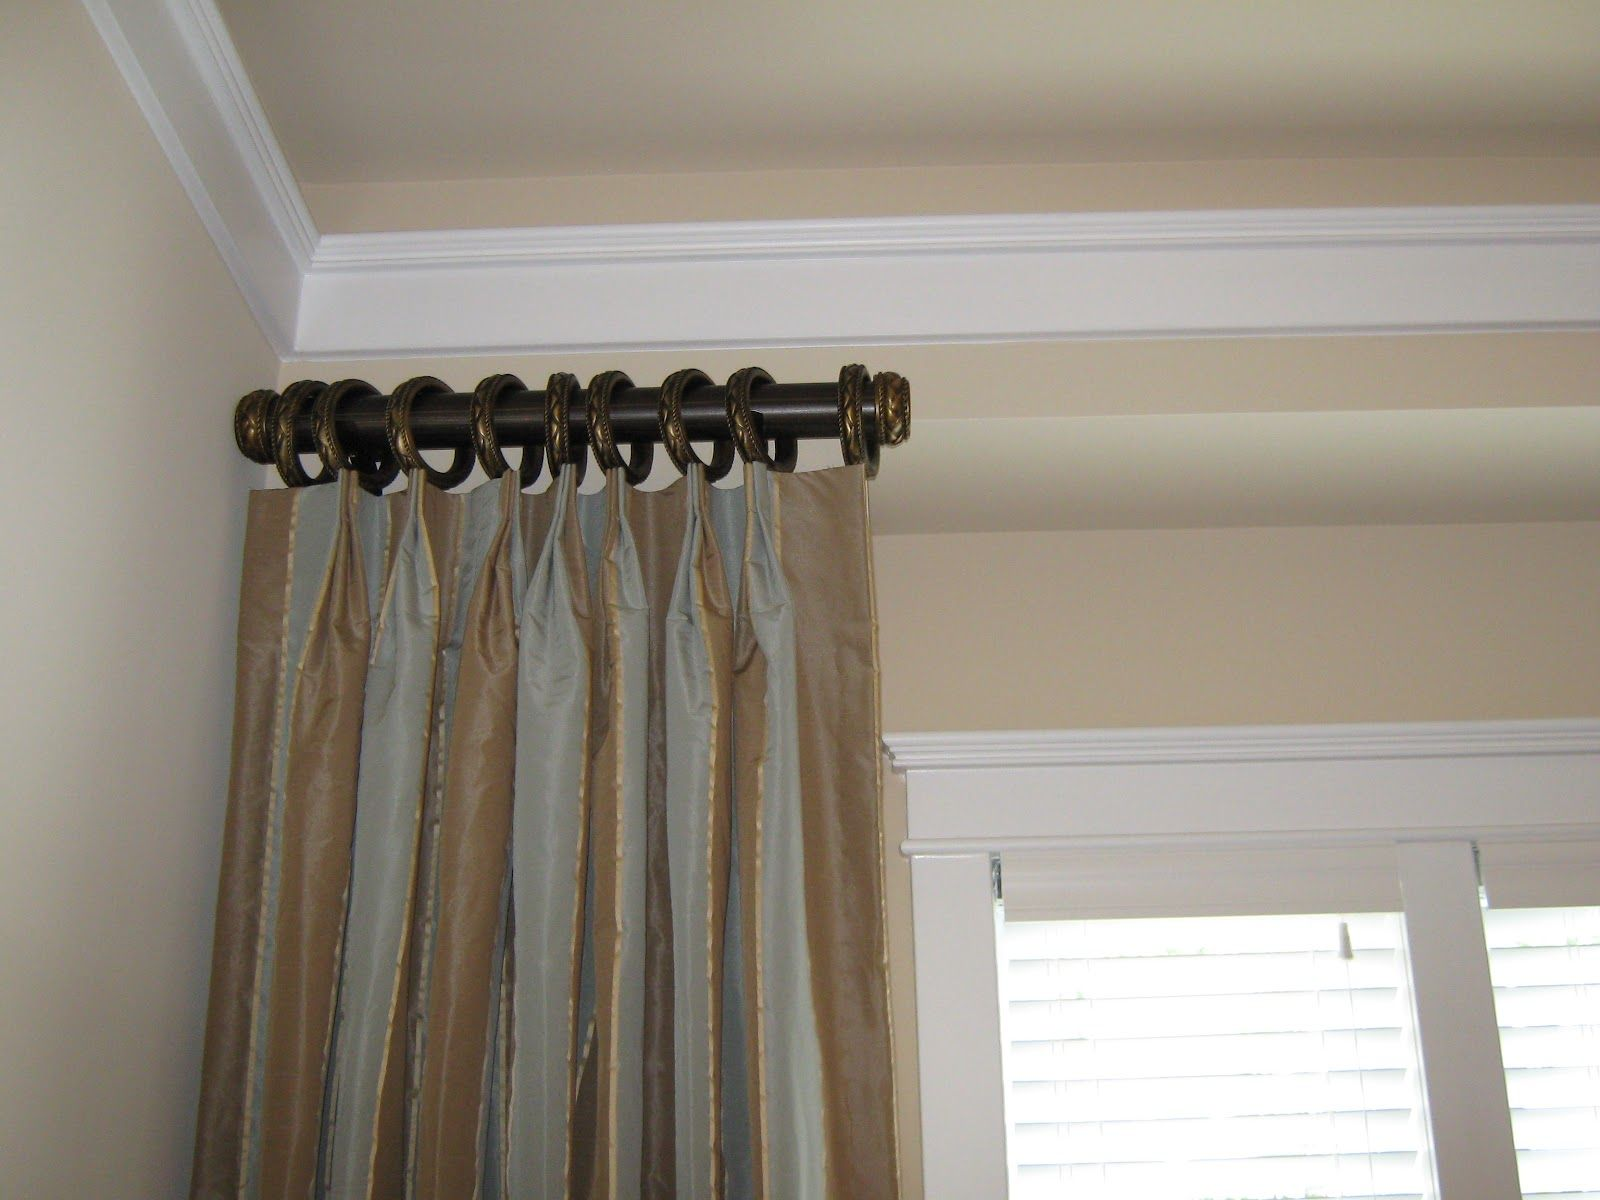 Decorative Side Panel Curtain Rod Panels Is A Decorative Use Of Drapery Hardware For Stationary Panels - Vorhang Ohne Nähen Kürzen